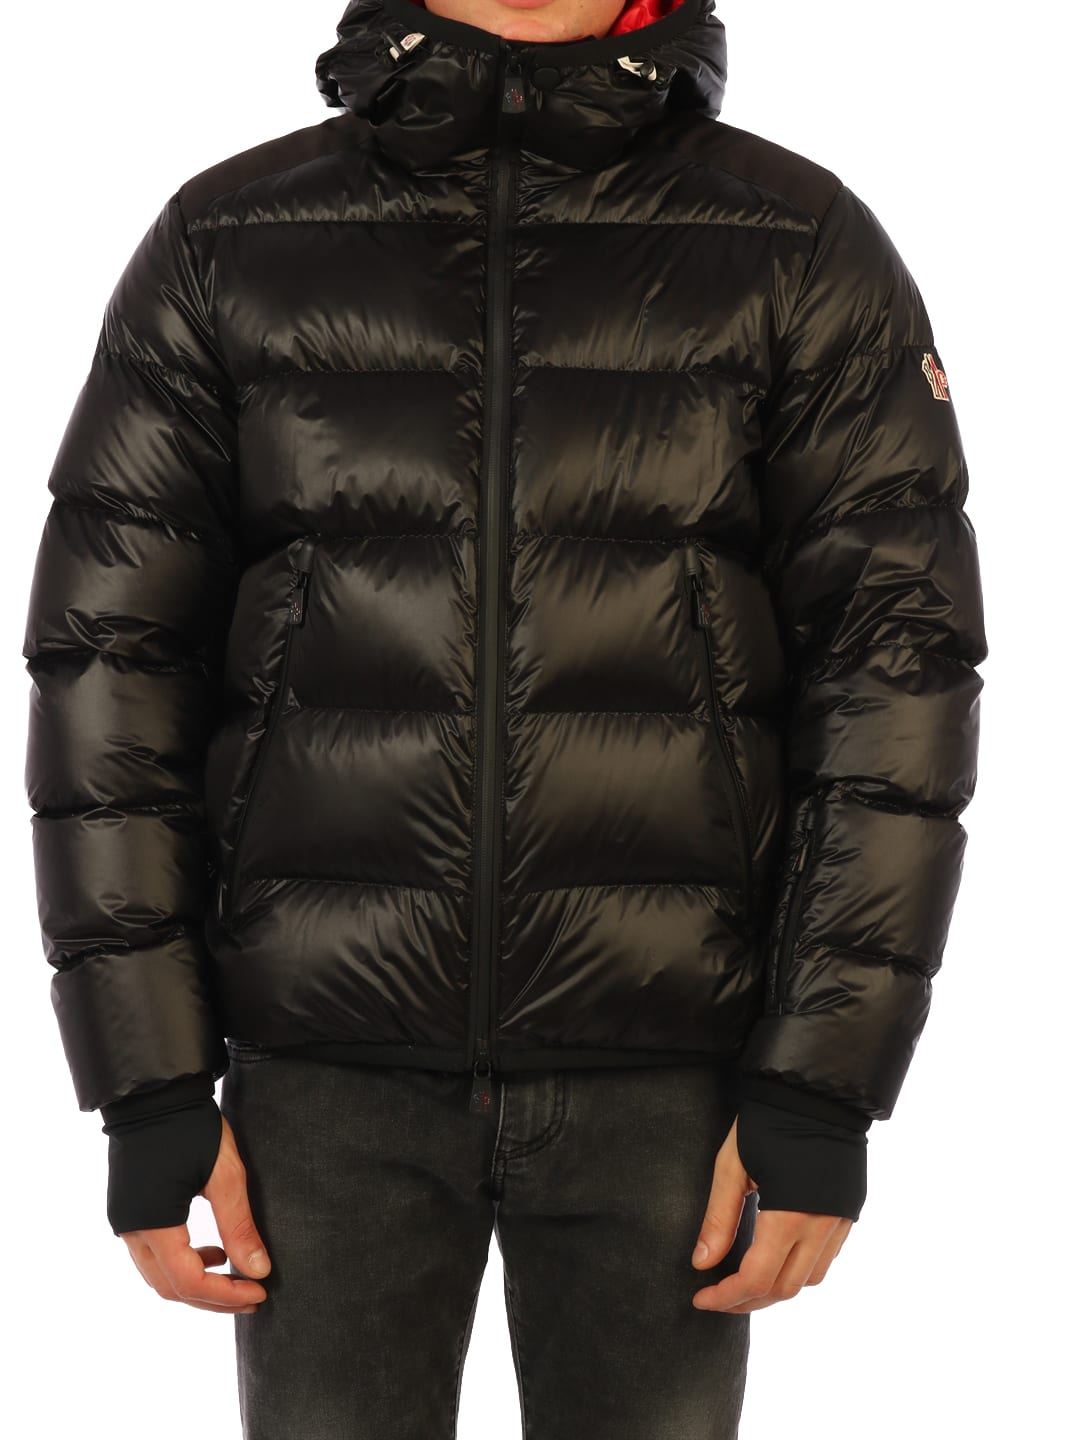 Moncler Grenoble Downs HINTERTUX DOWN JACKET